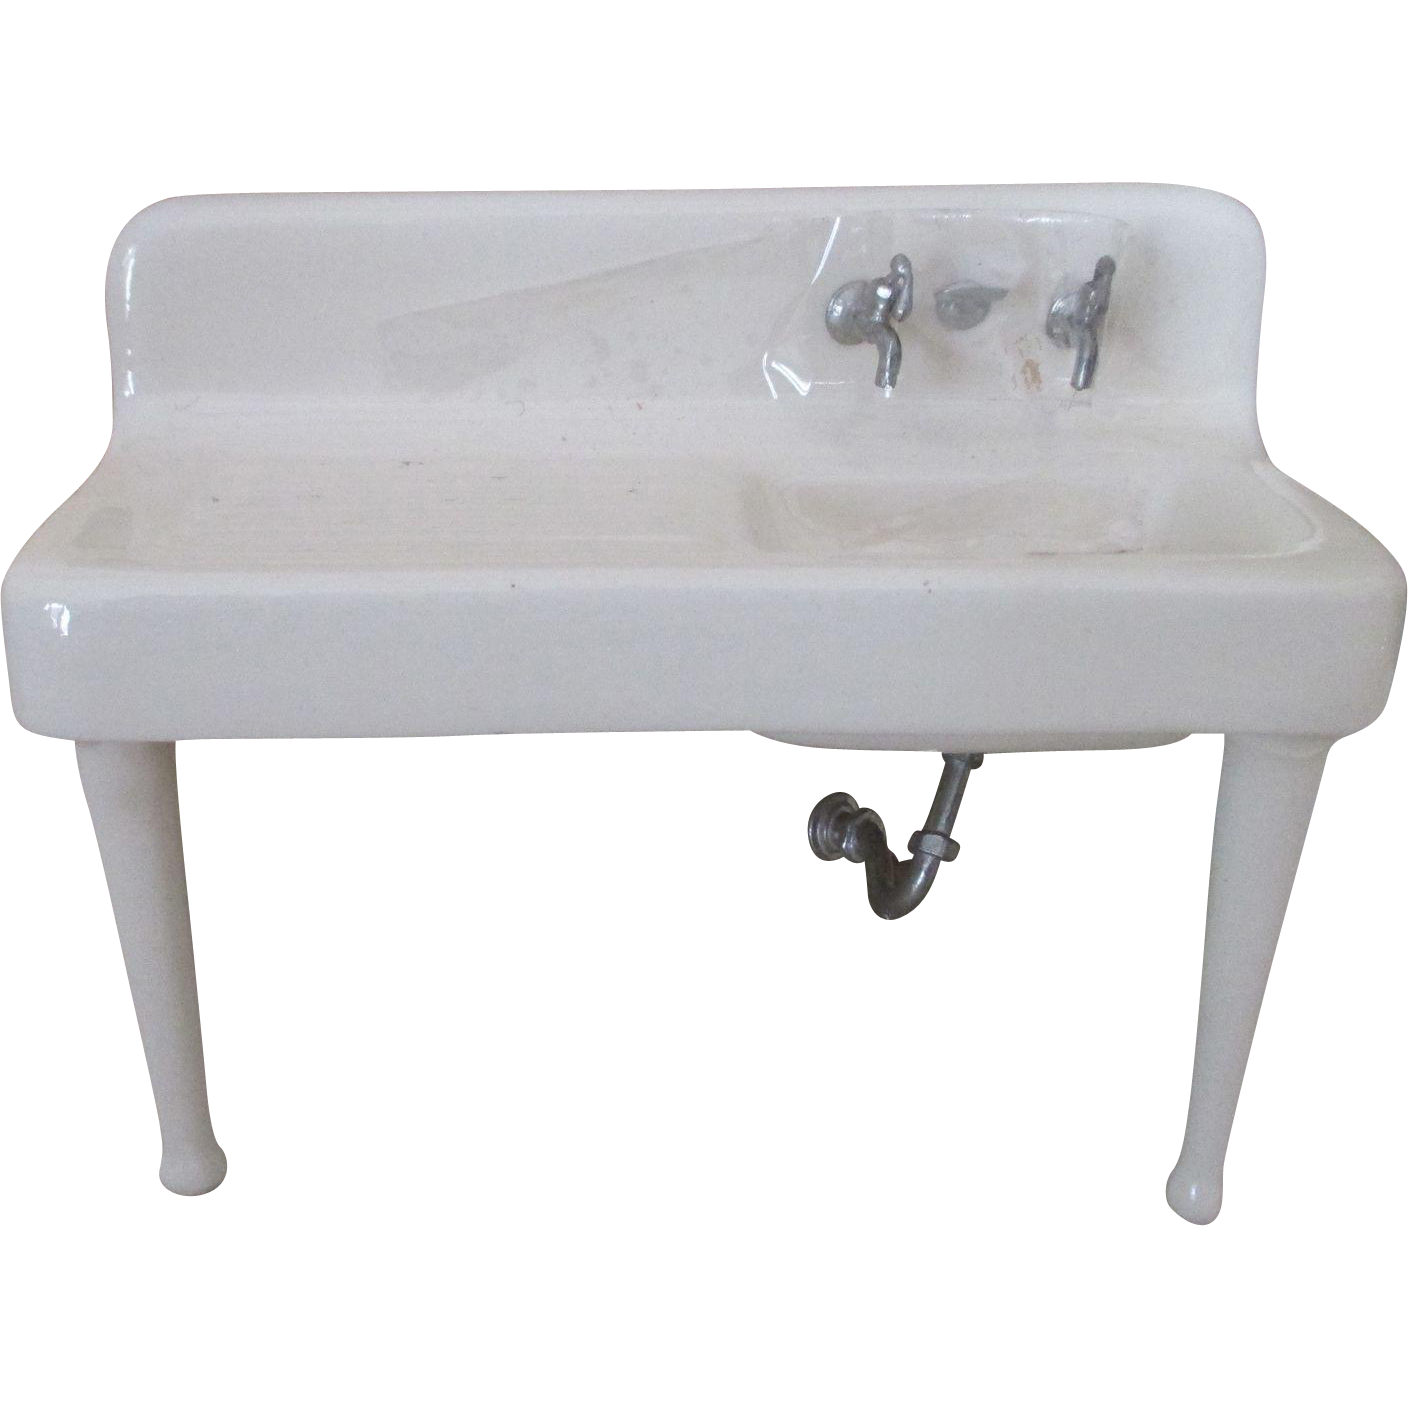 Mini Farmhouse Sink : Miniature Doll House Porcelain Farmhouse Sink from nostalgicimages on ...